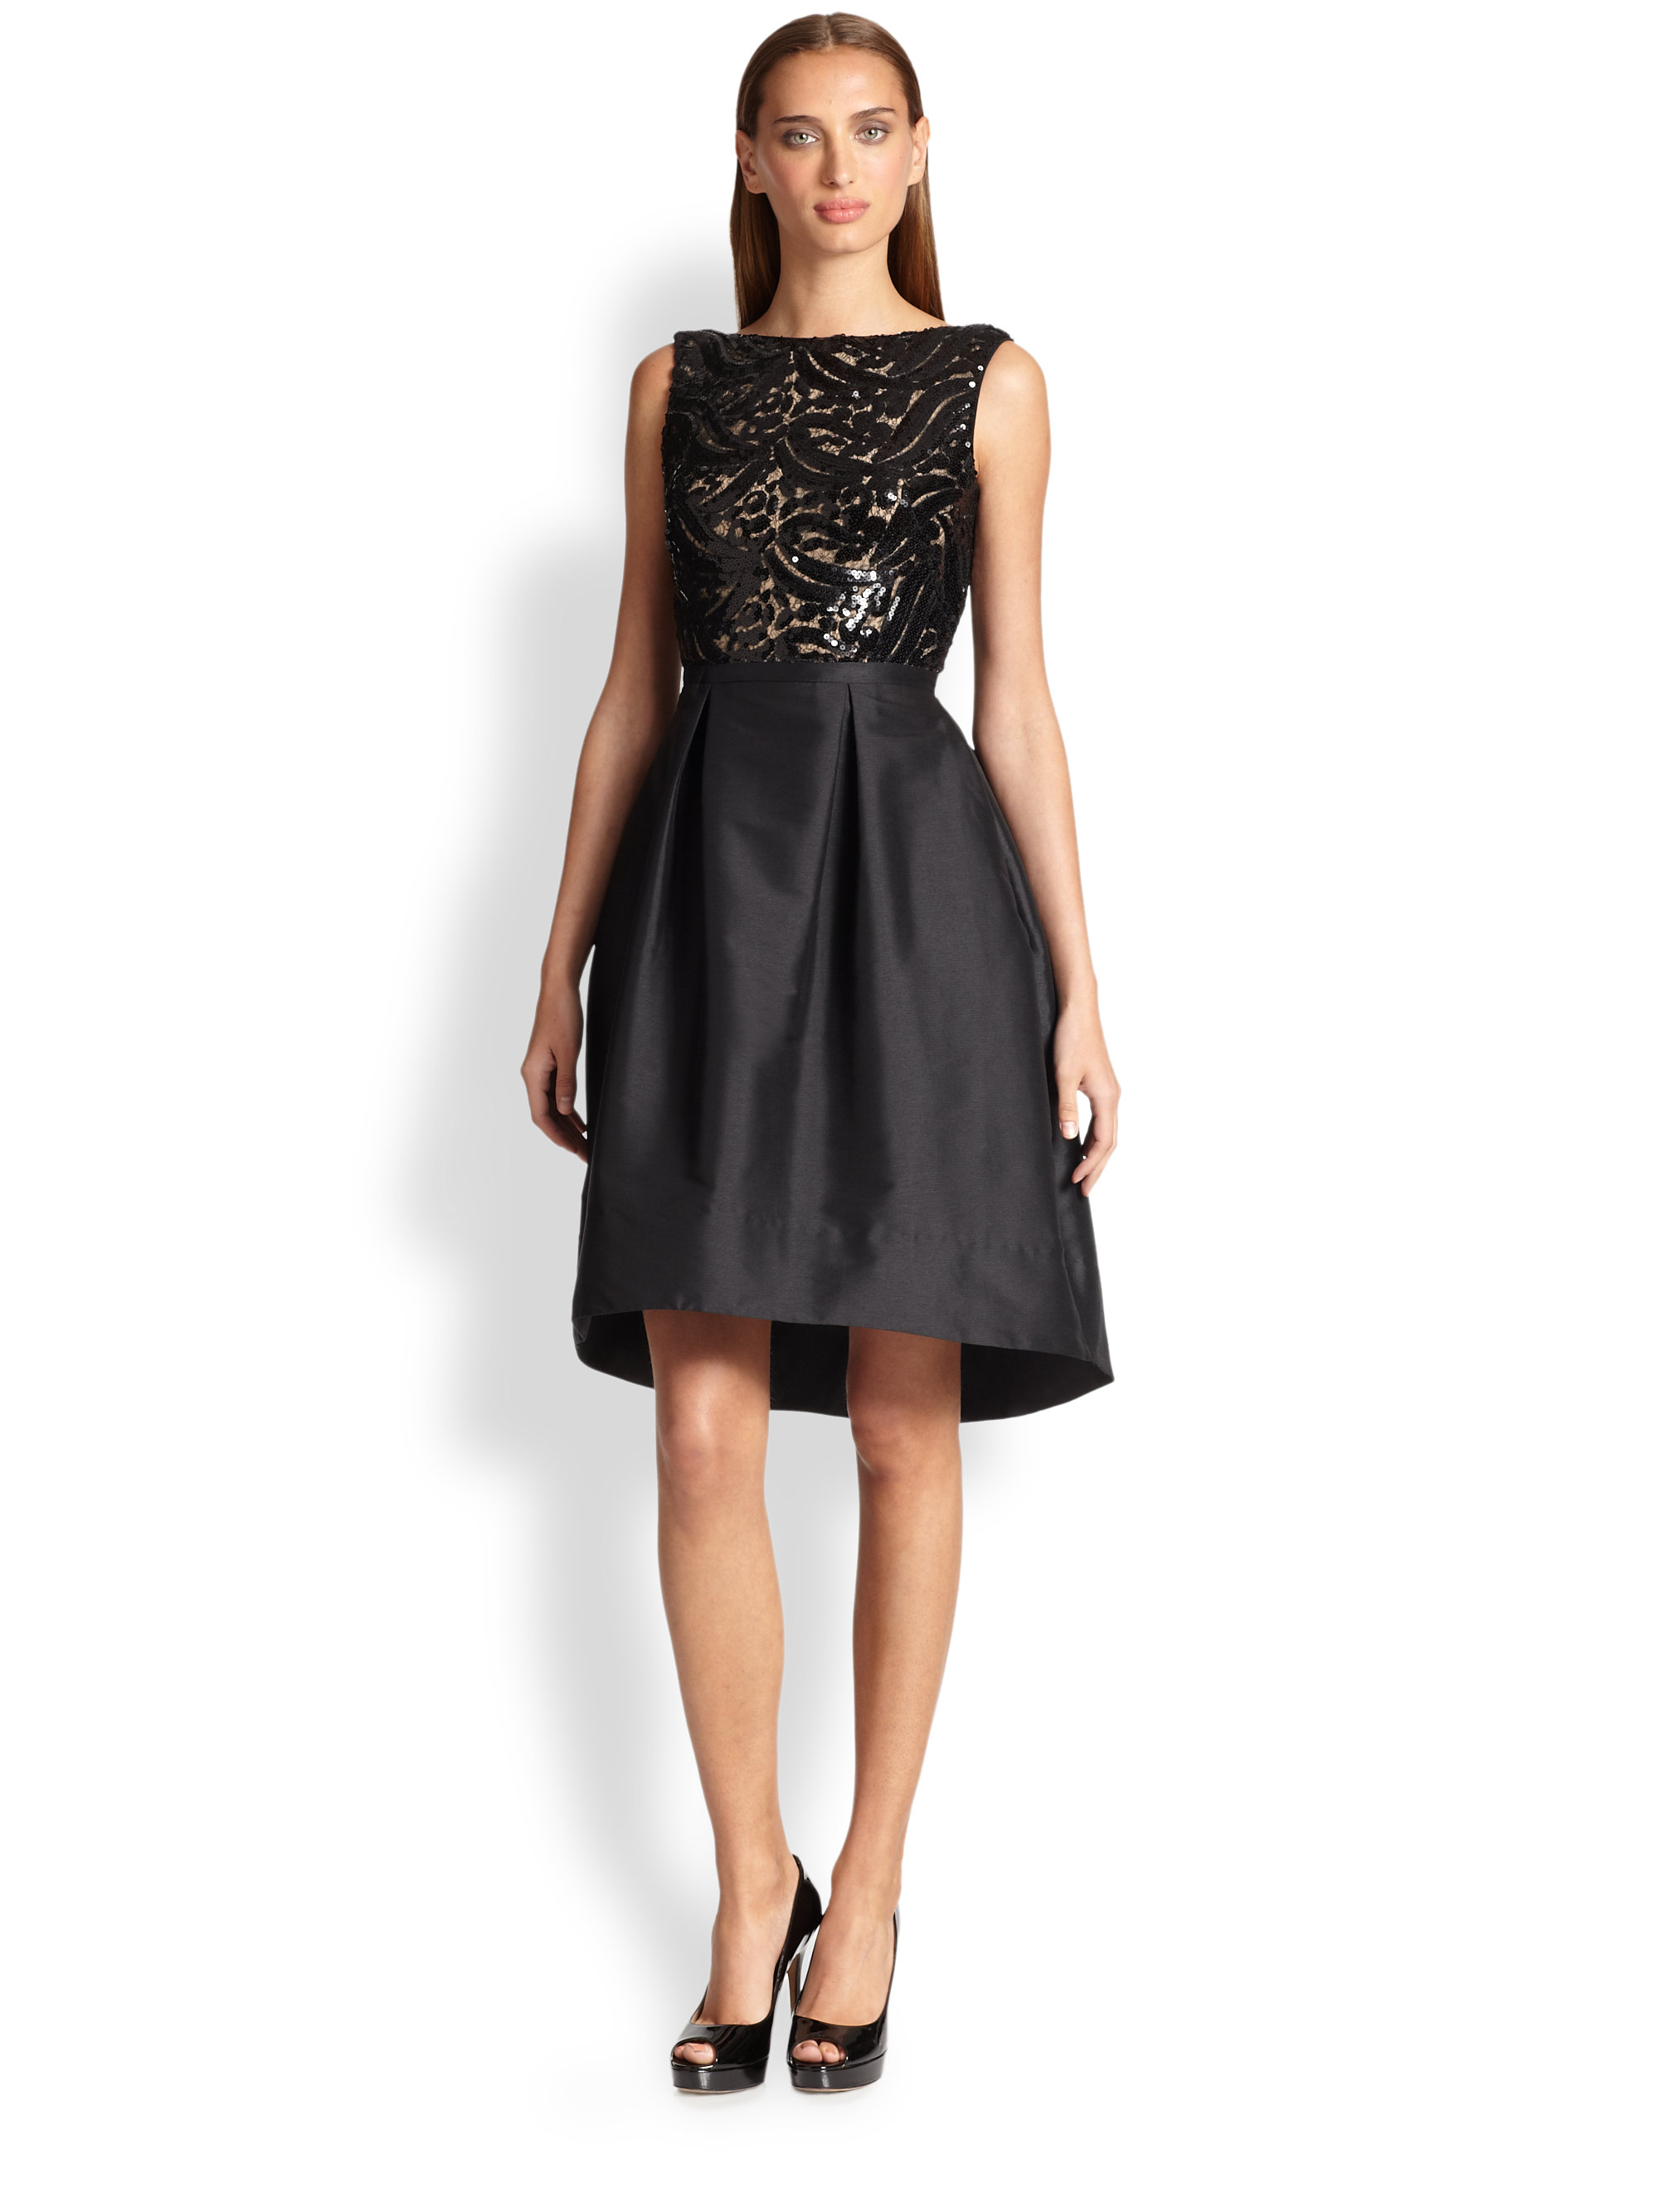 Monique Lhuillier Black Dress | Weddings Dresses